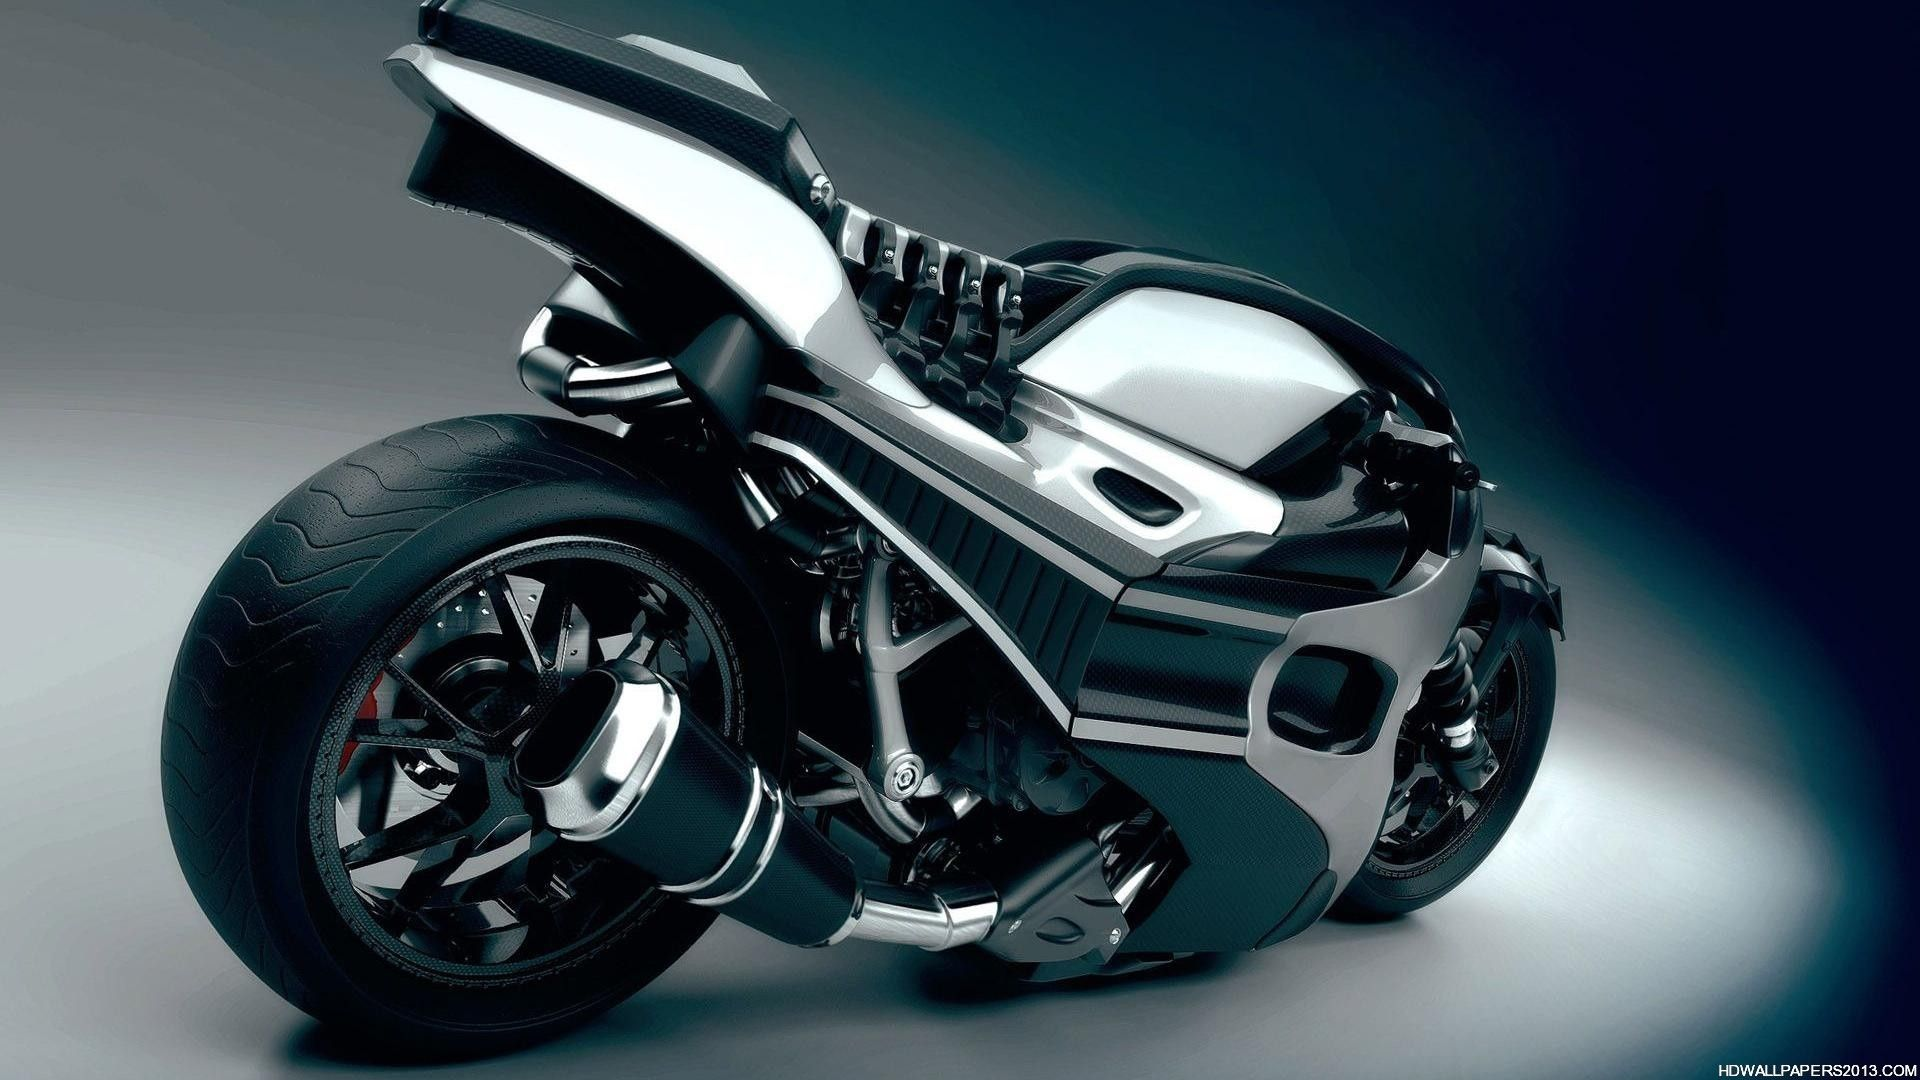 hd images of cars and bikes google search - Super Cool Cars Wallpapers Hd